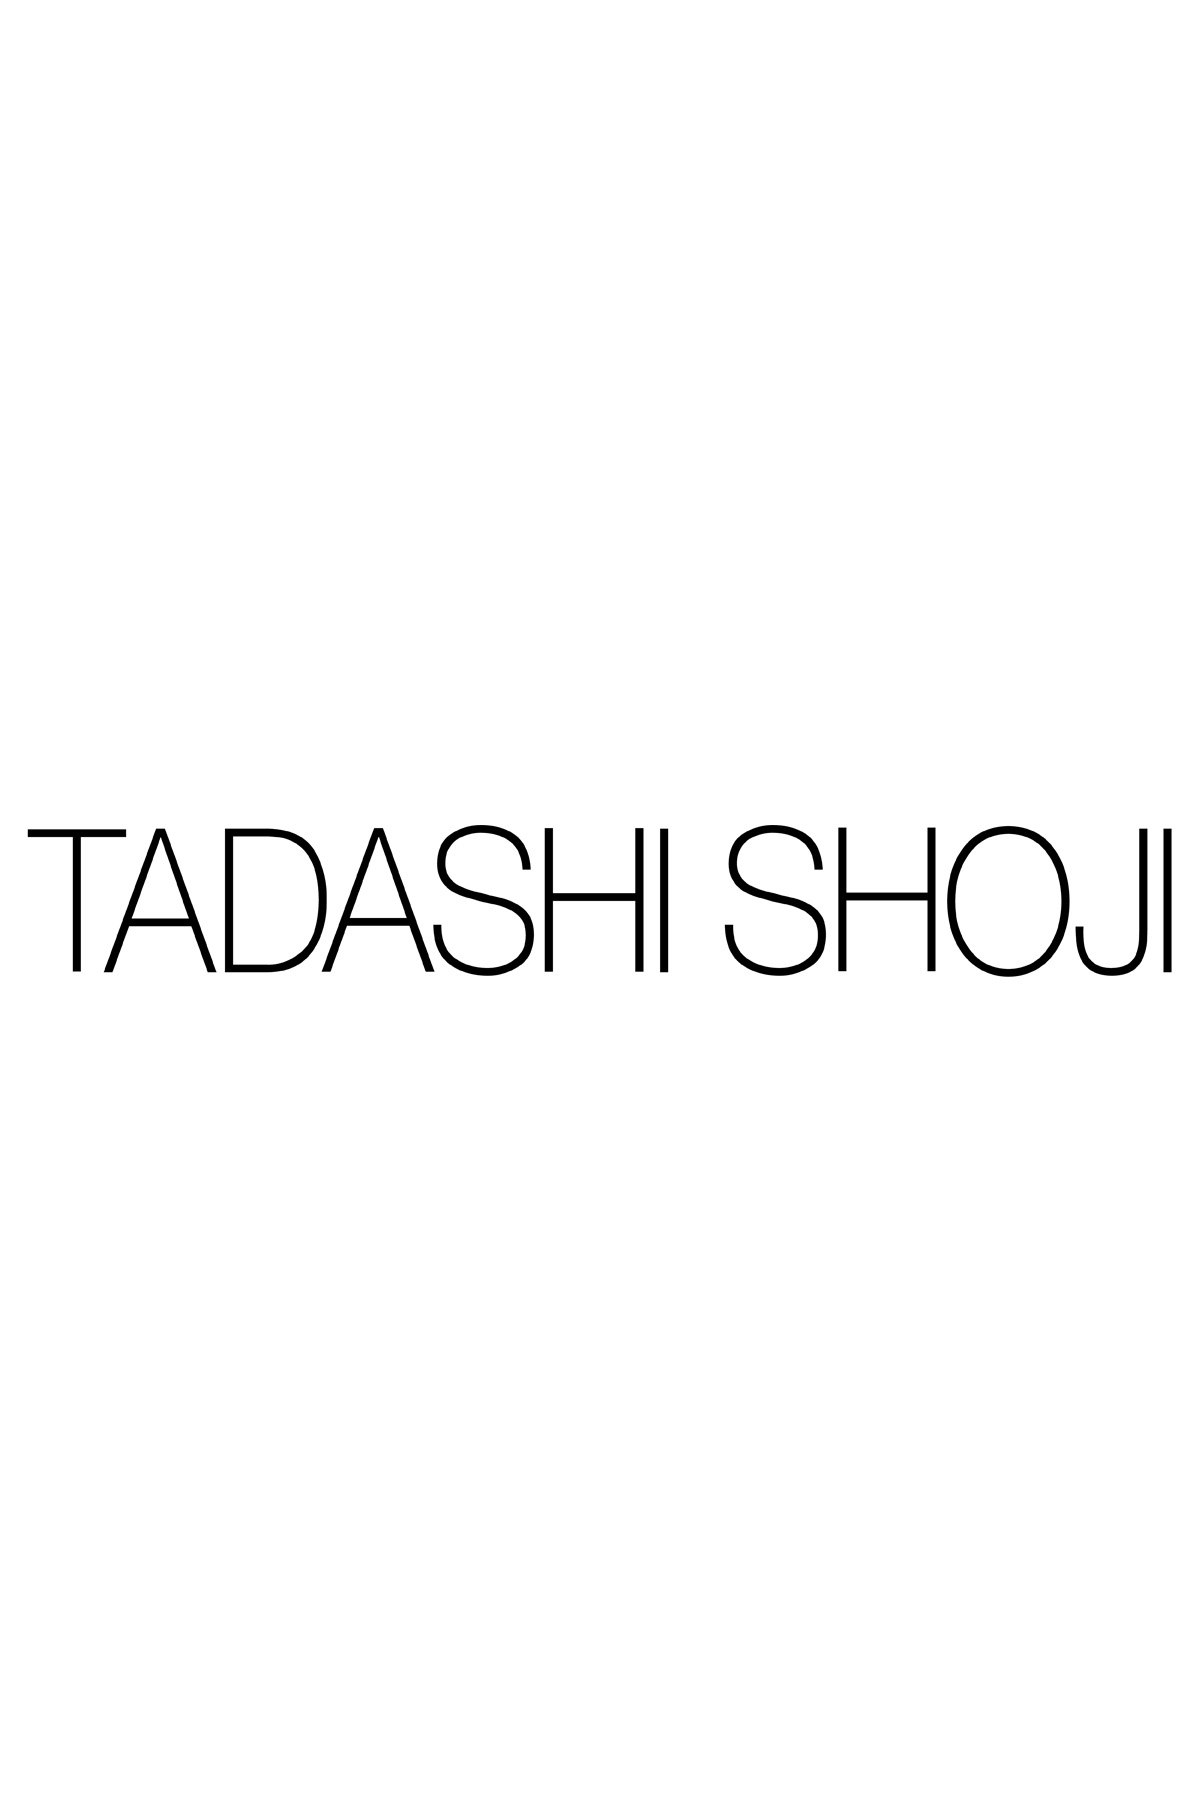 Tadashi Shoji - Crippen Embroidered Neoprene Dress - PLUS SIZE